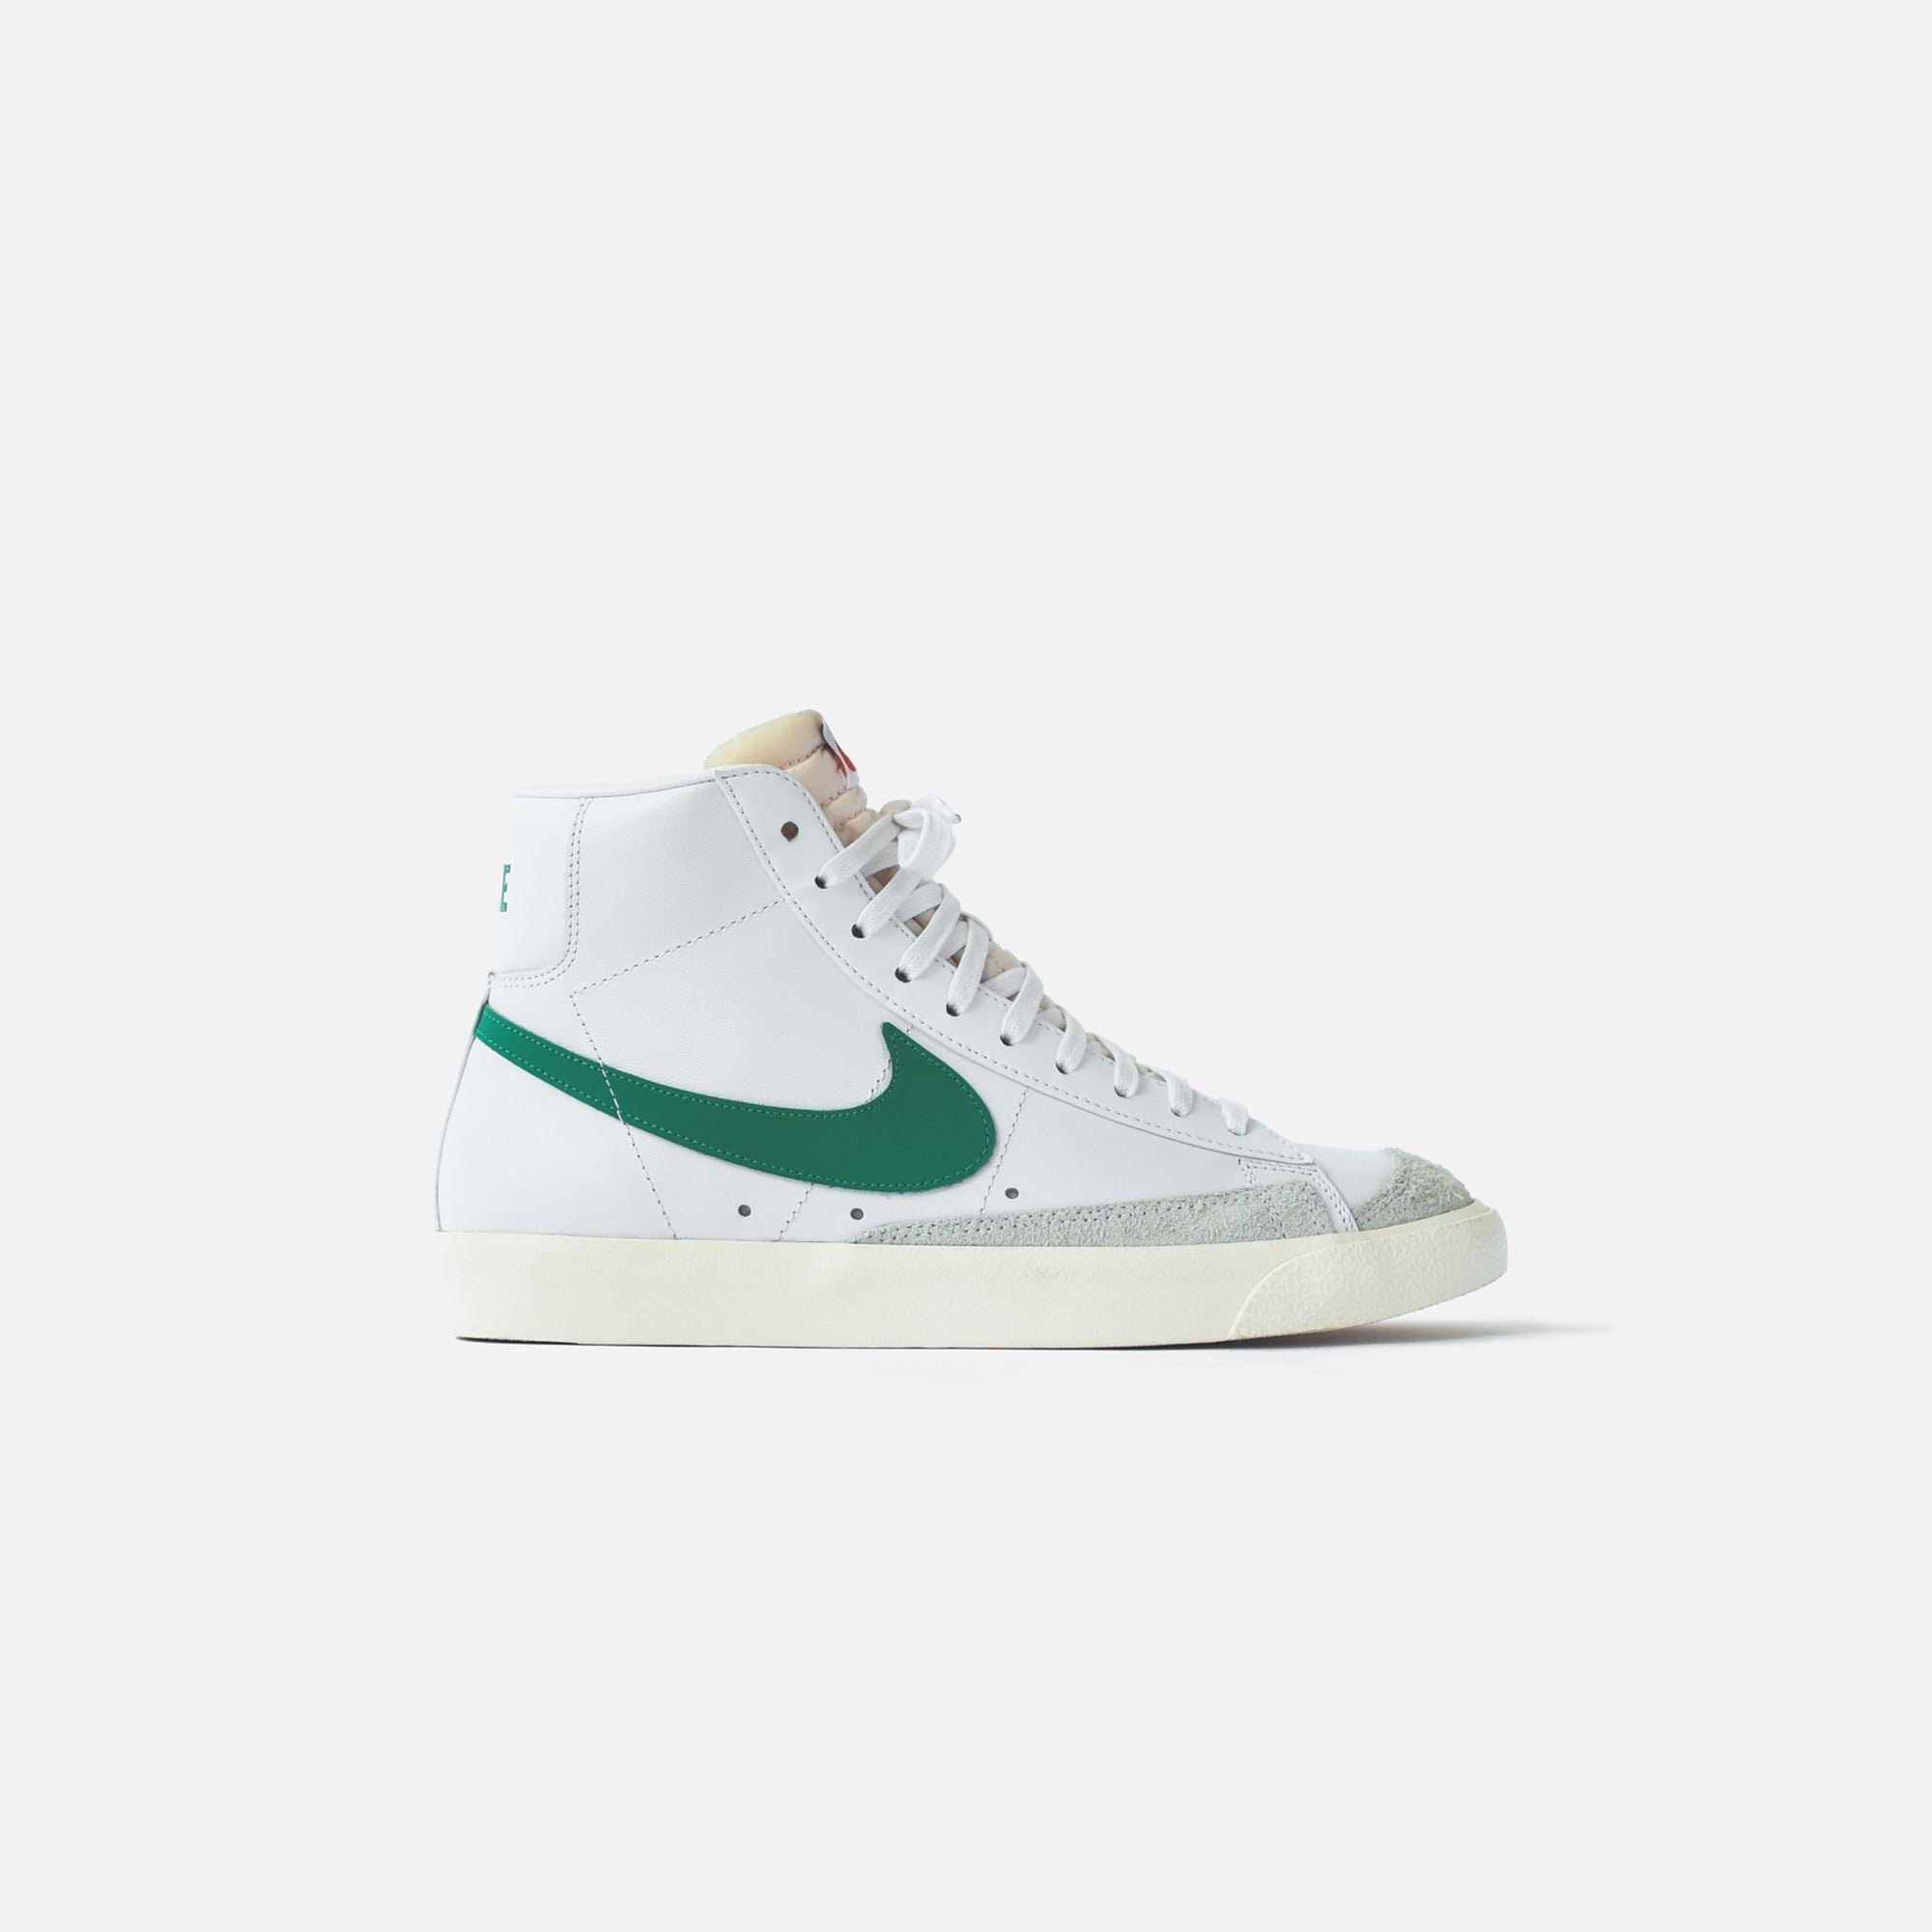 finest selection 8a8db c8efd ... promo code for nike blazer mid 77 vintage white green kith 5b364 0edae